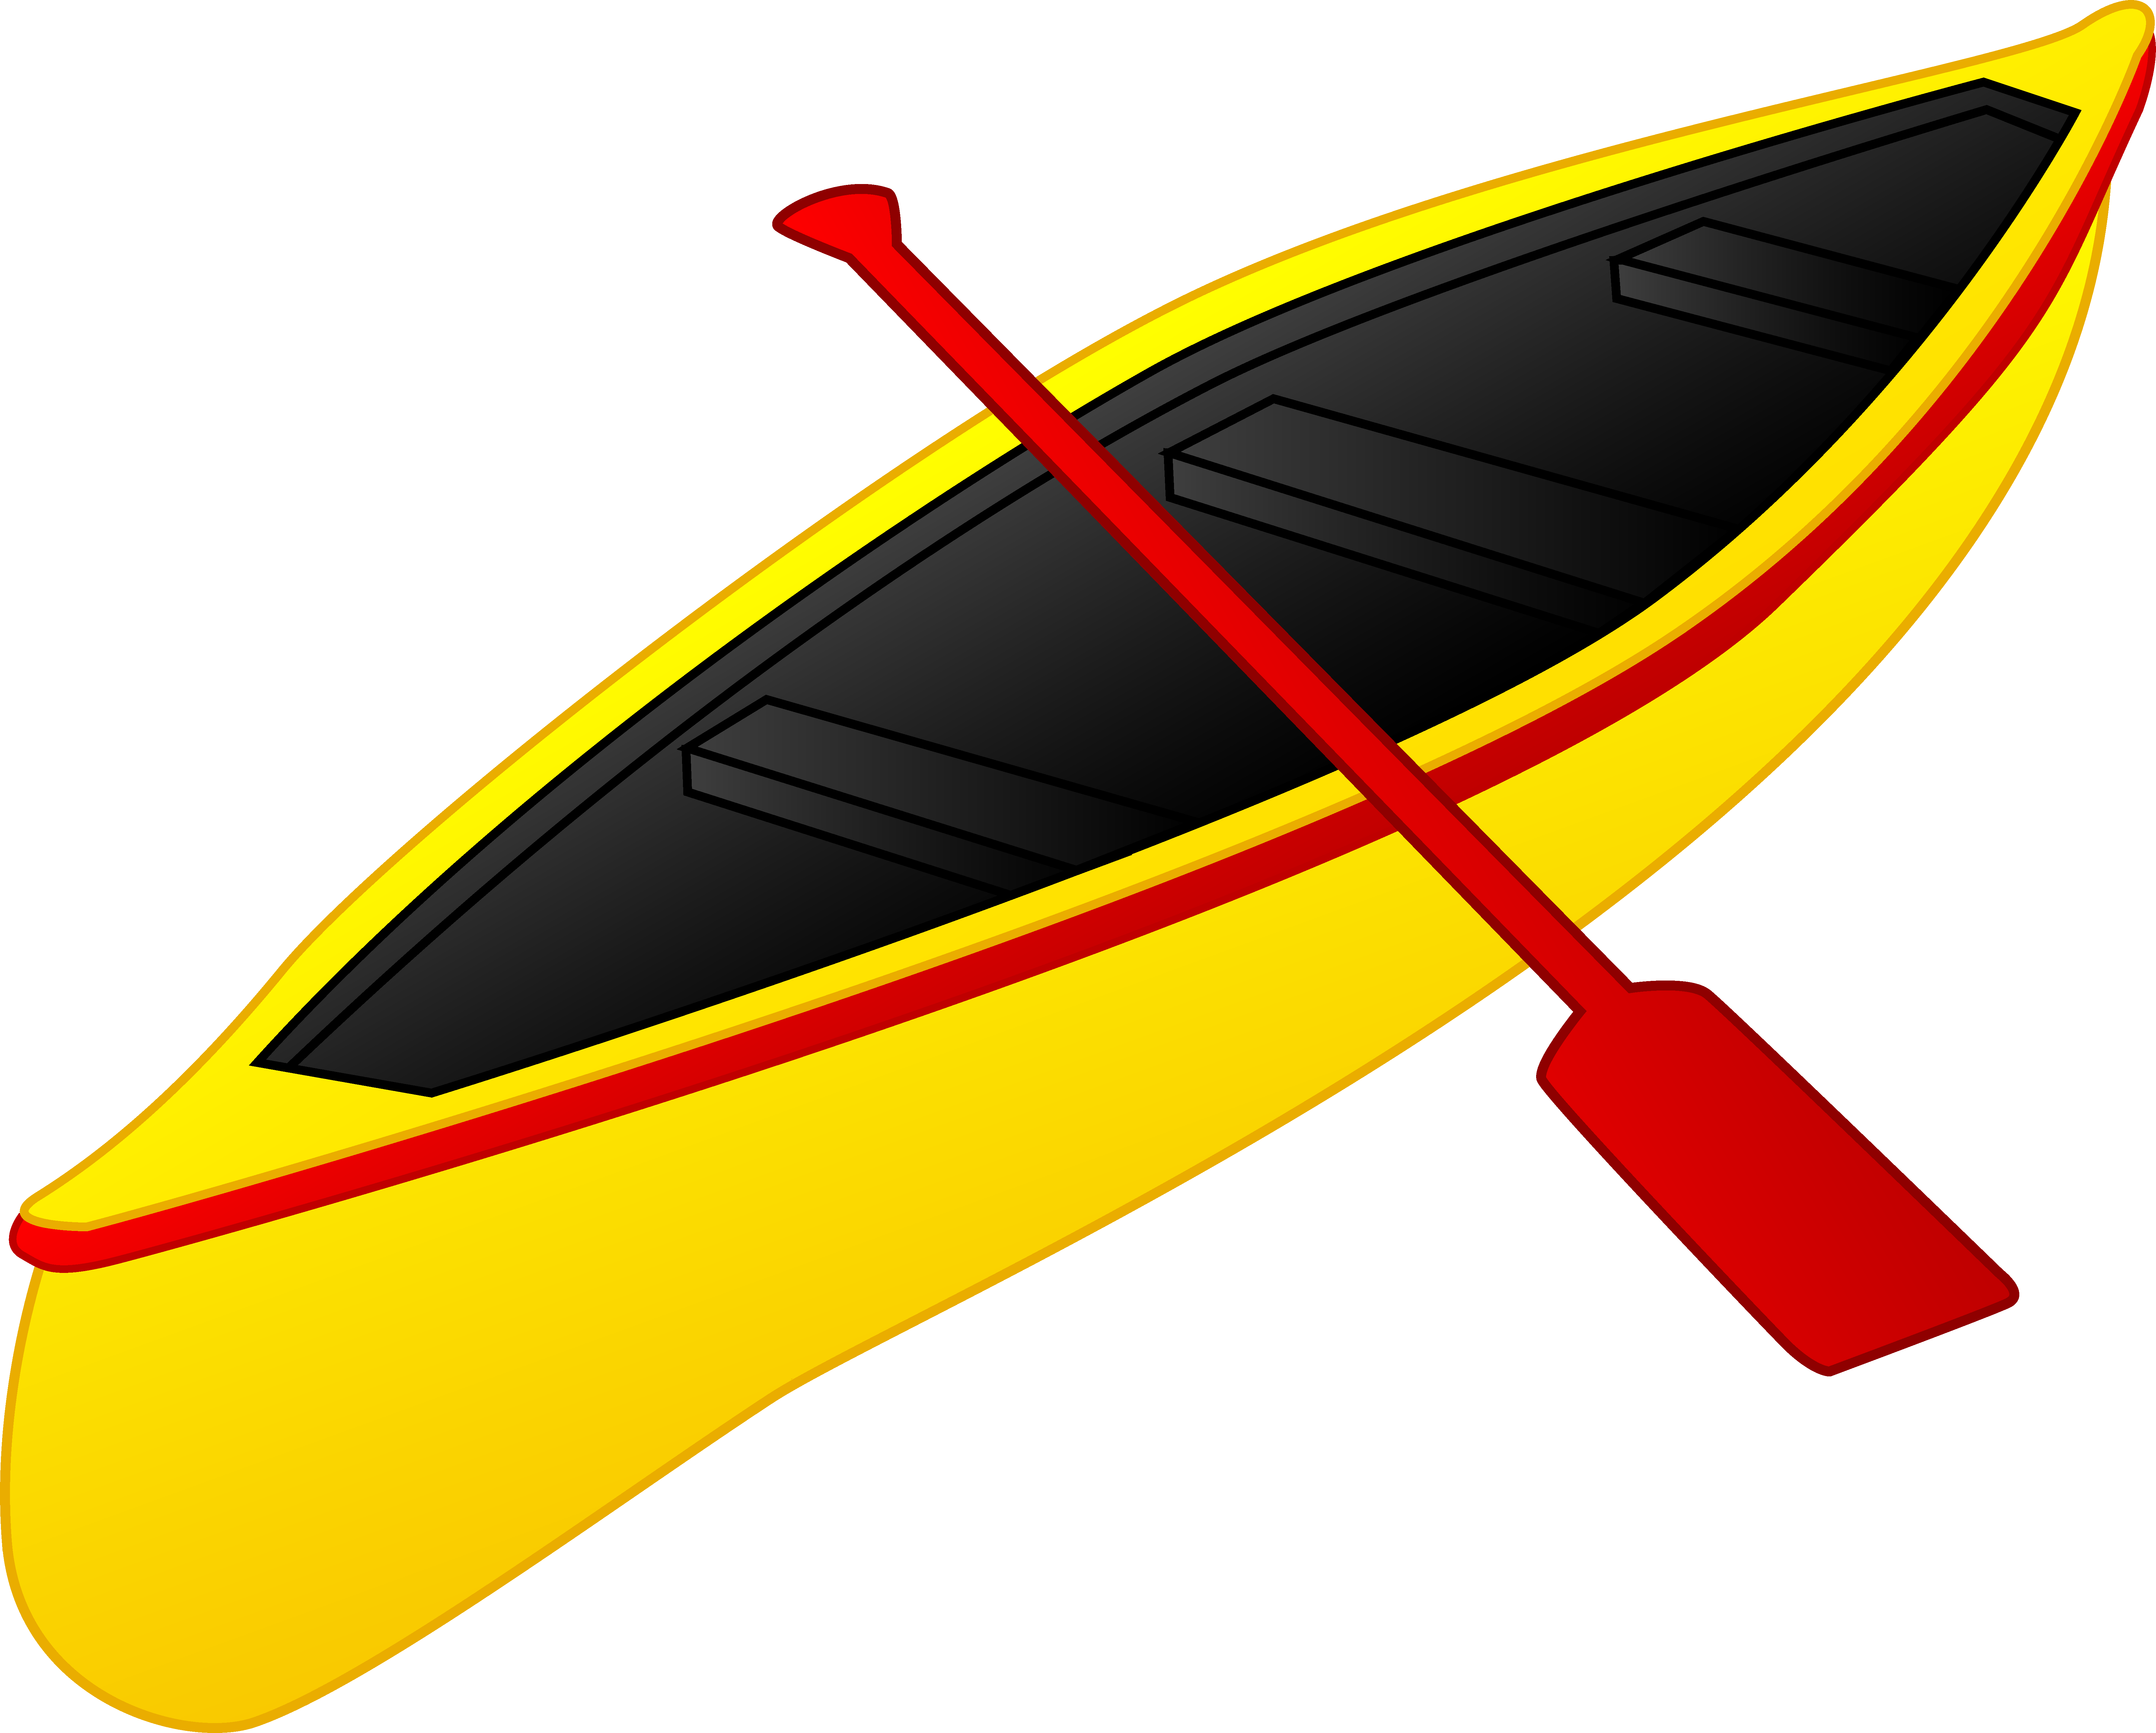 Yellow boat. With a red paddle